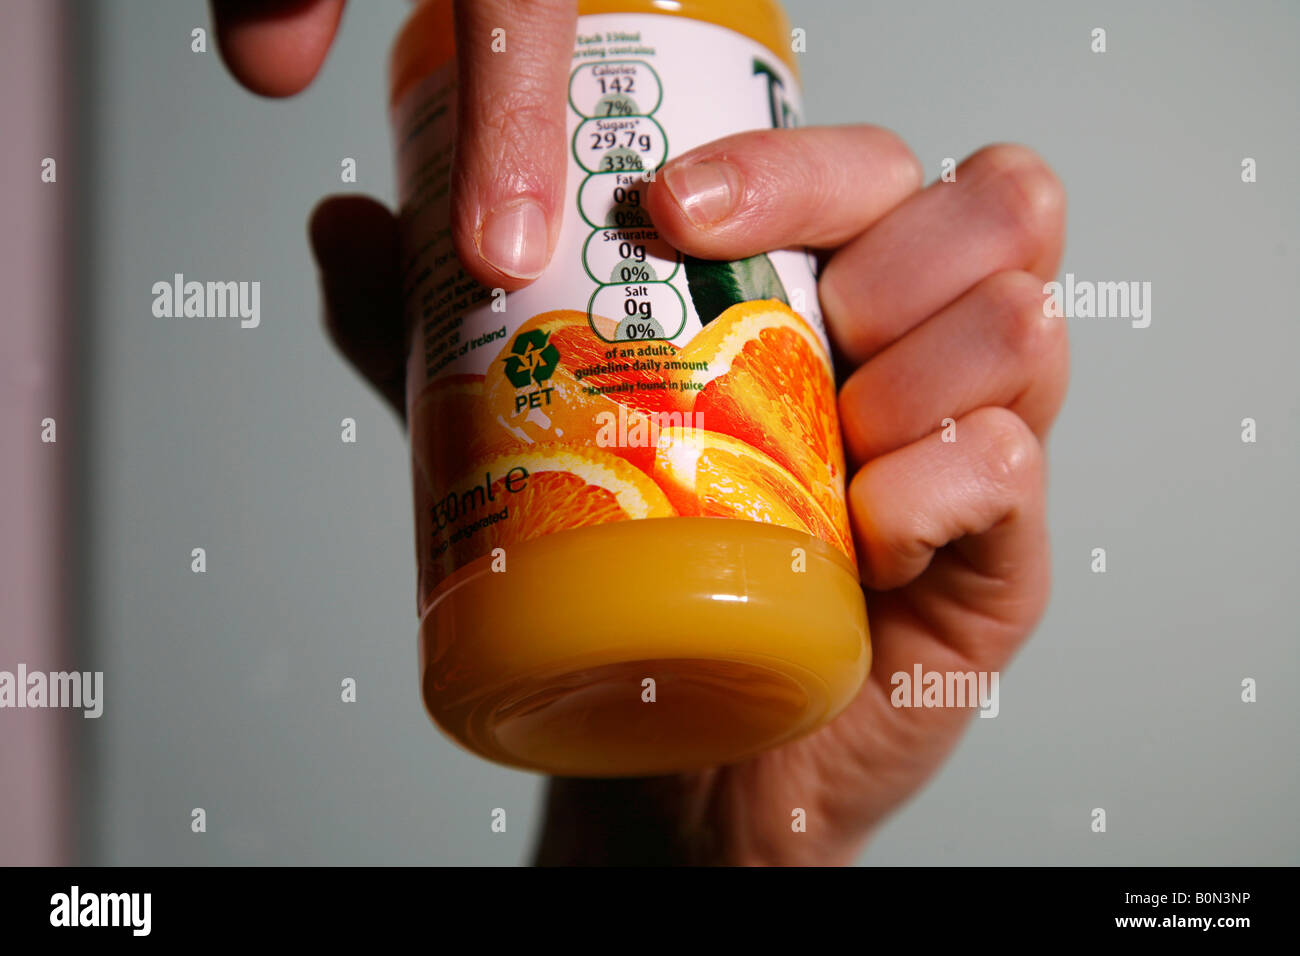 Recycling plastic orange juice bottle, container - Stock Image